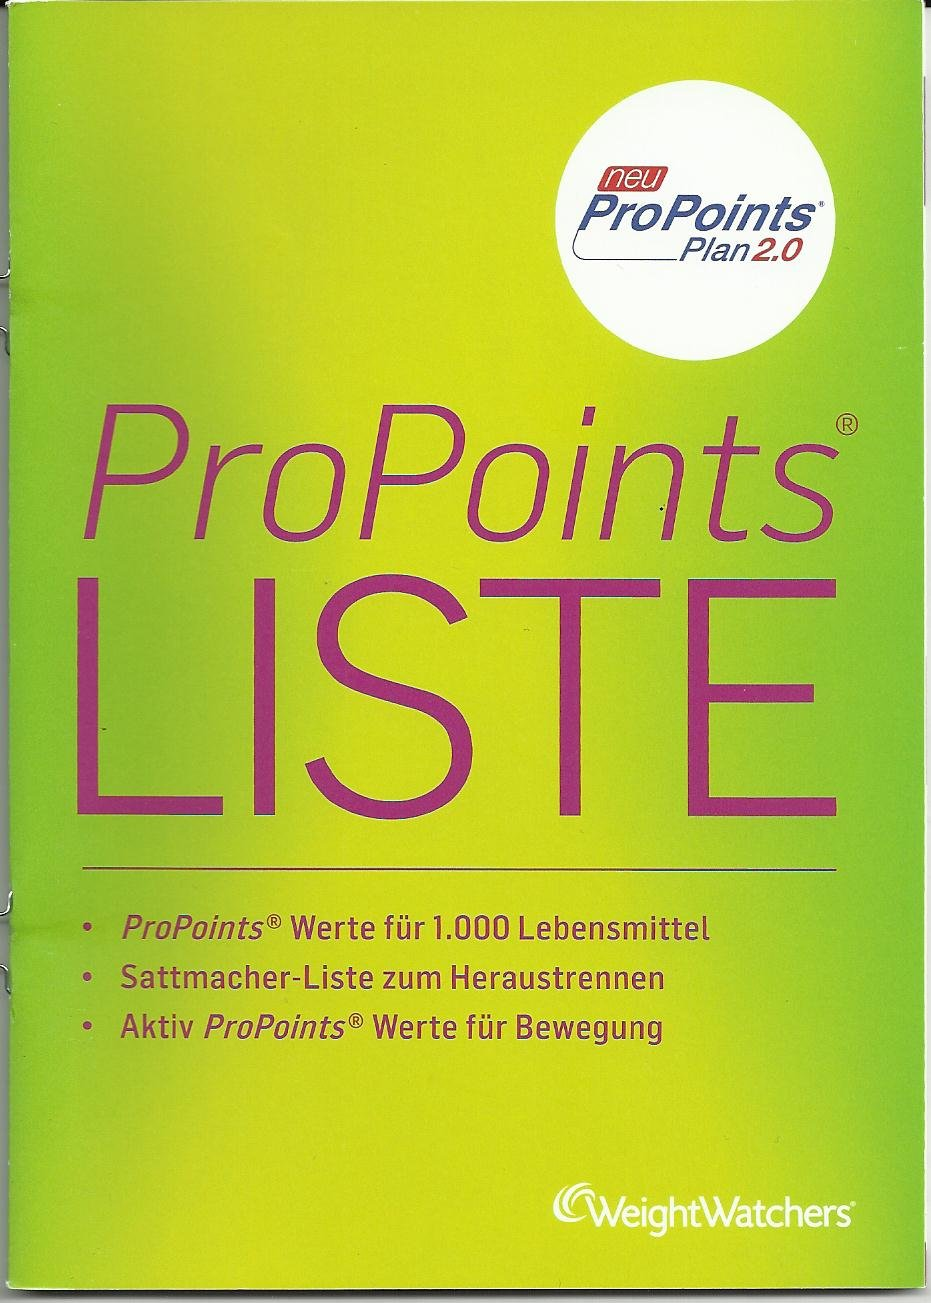 weight watchers propoints plan 2.0